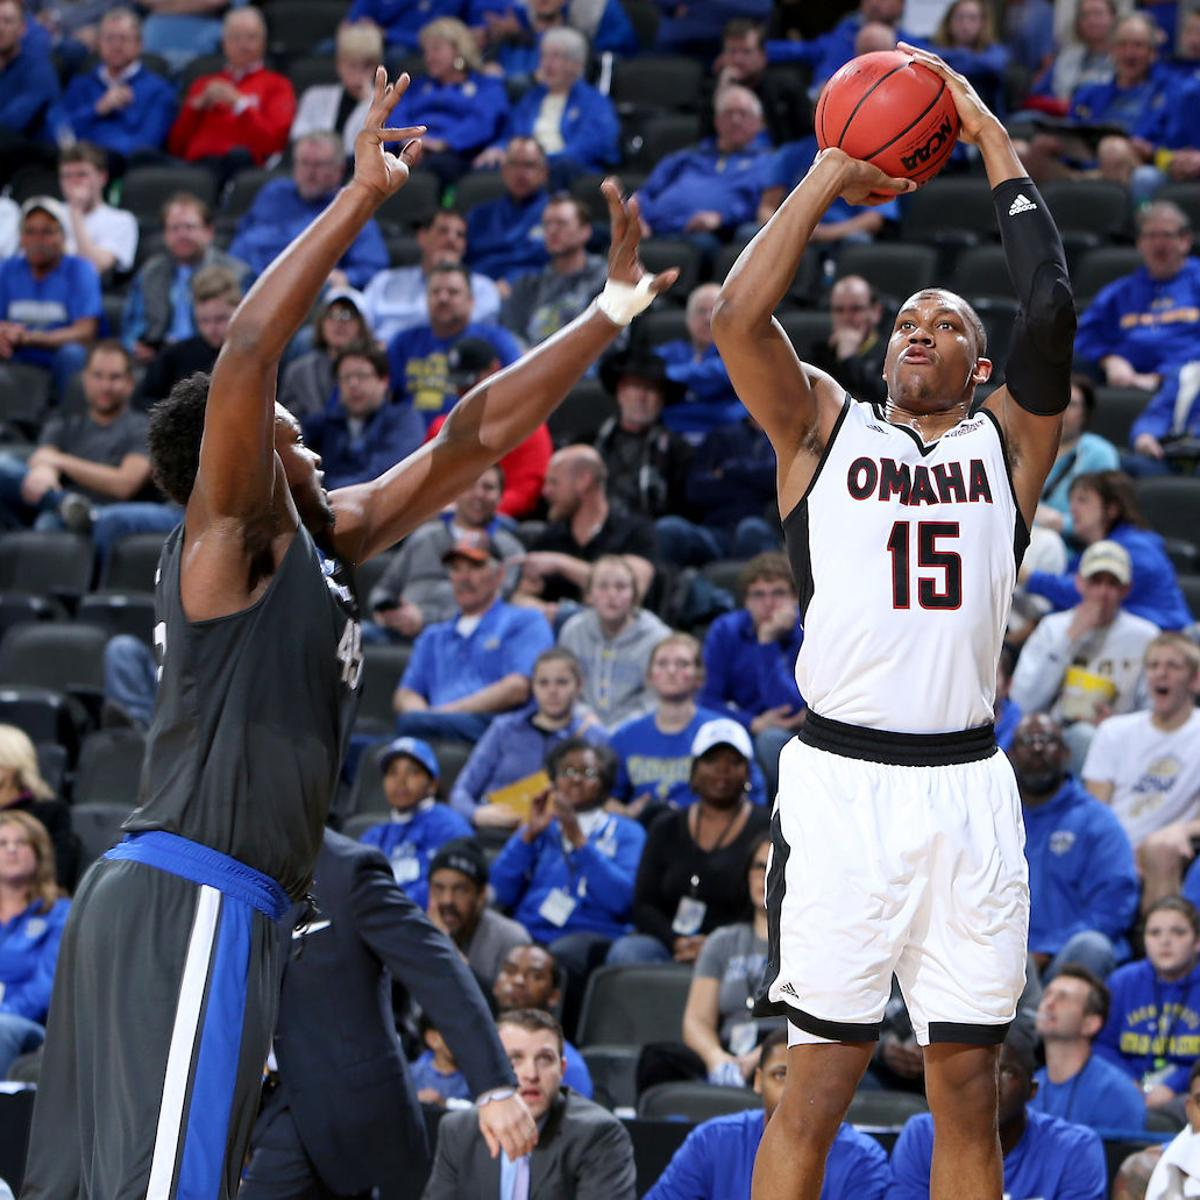 UNO men rally from 11-point, second-half deficit to edge